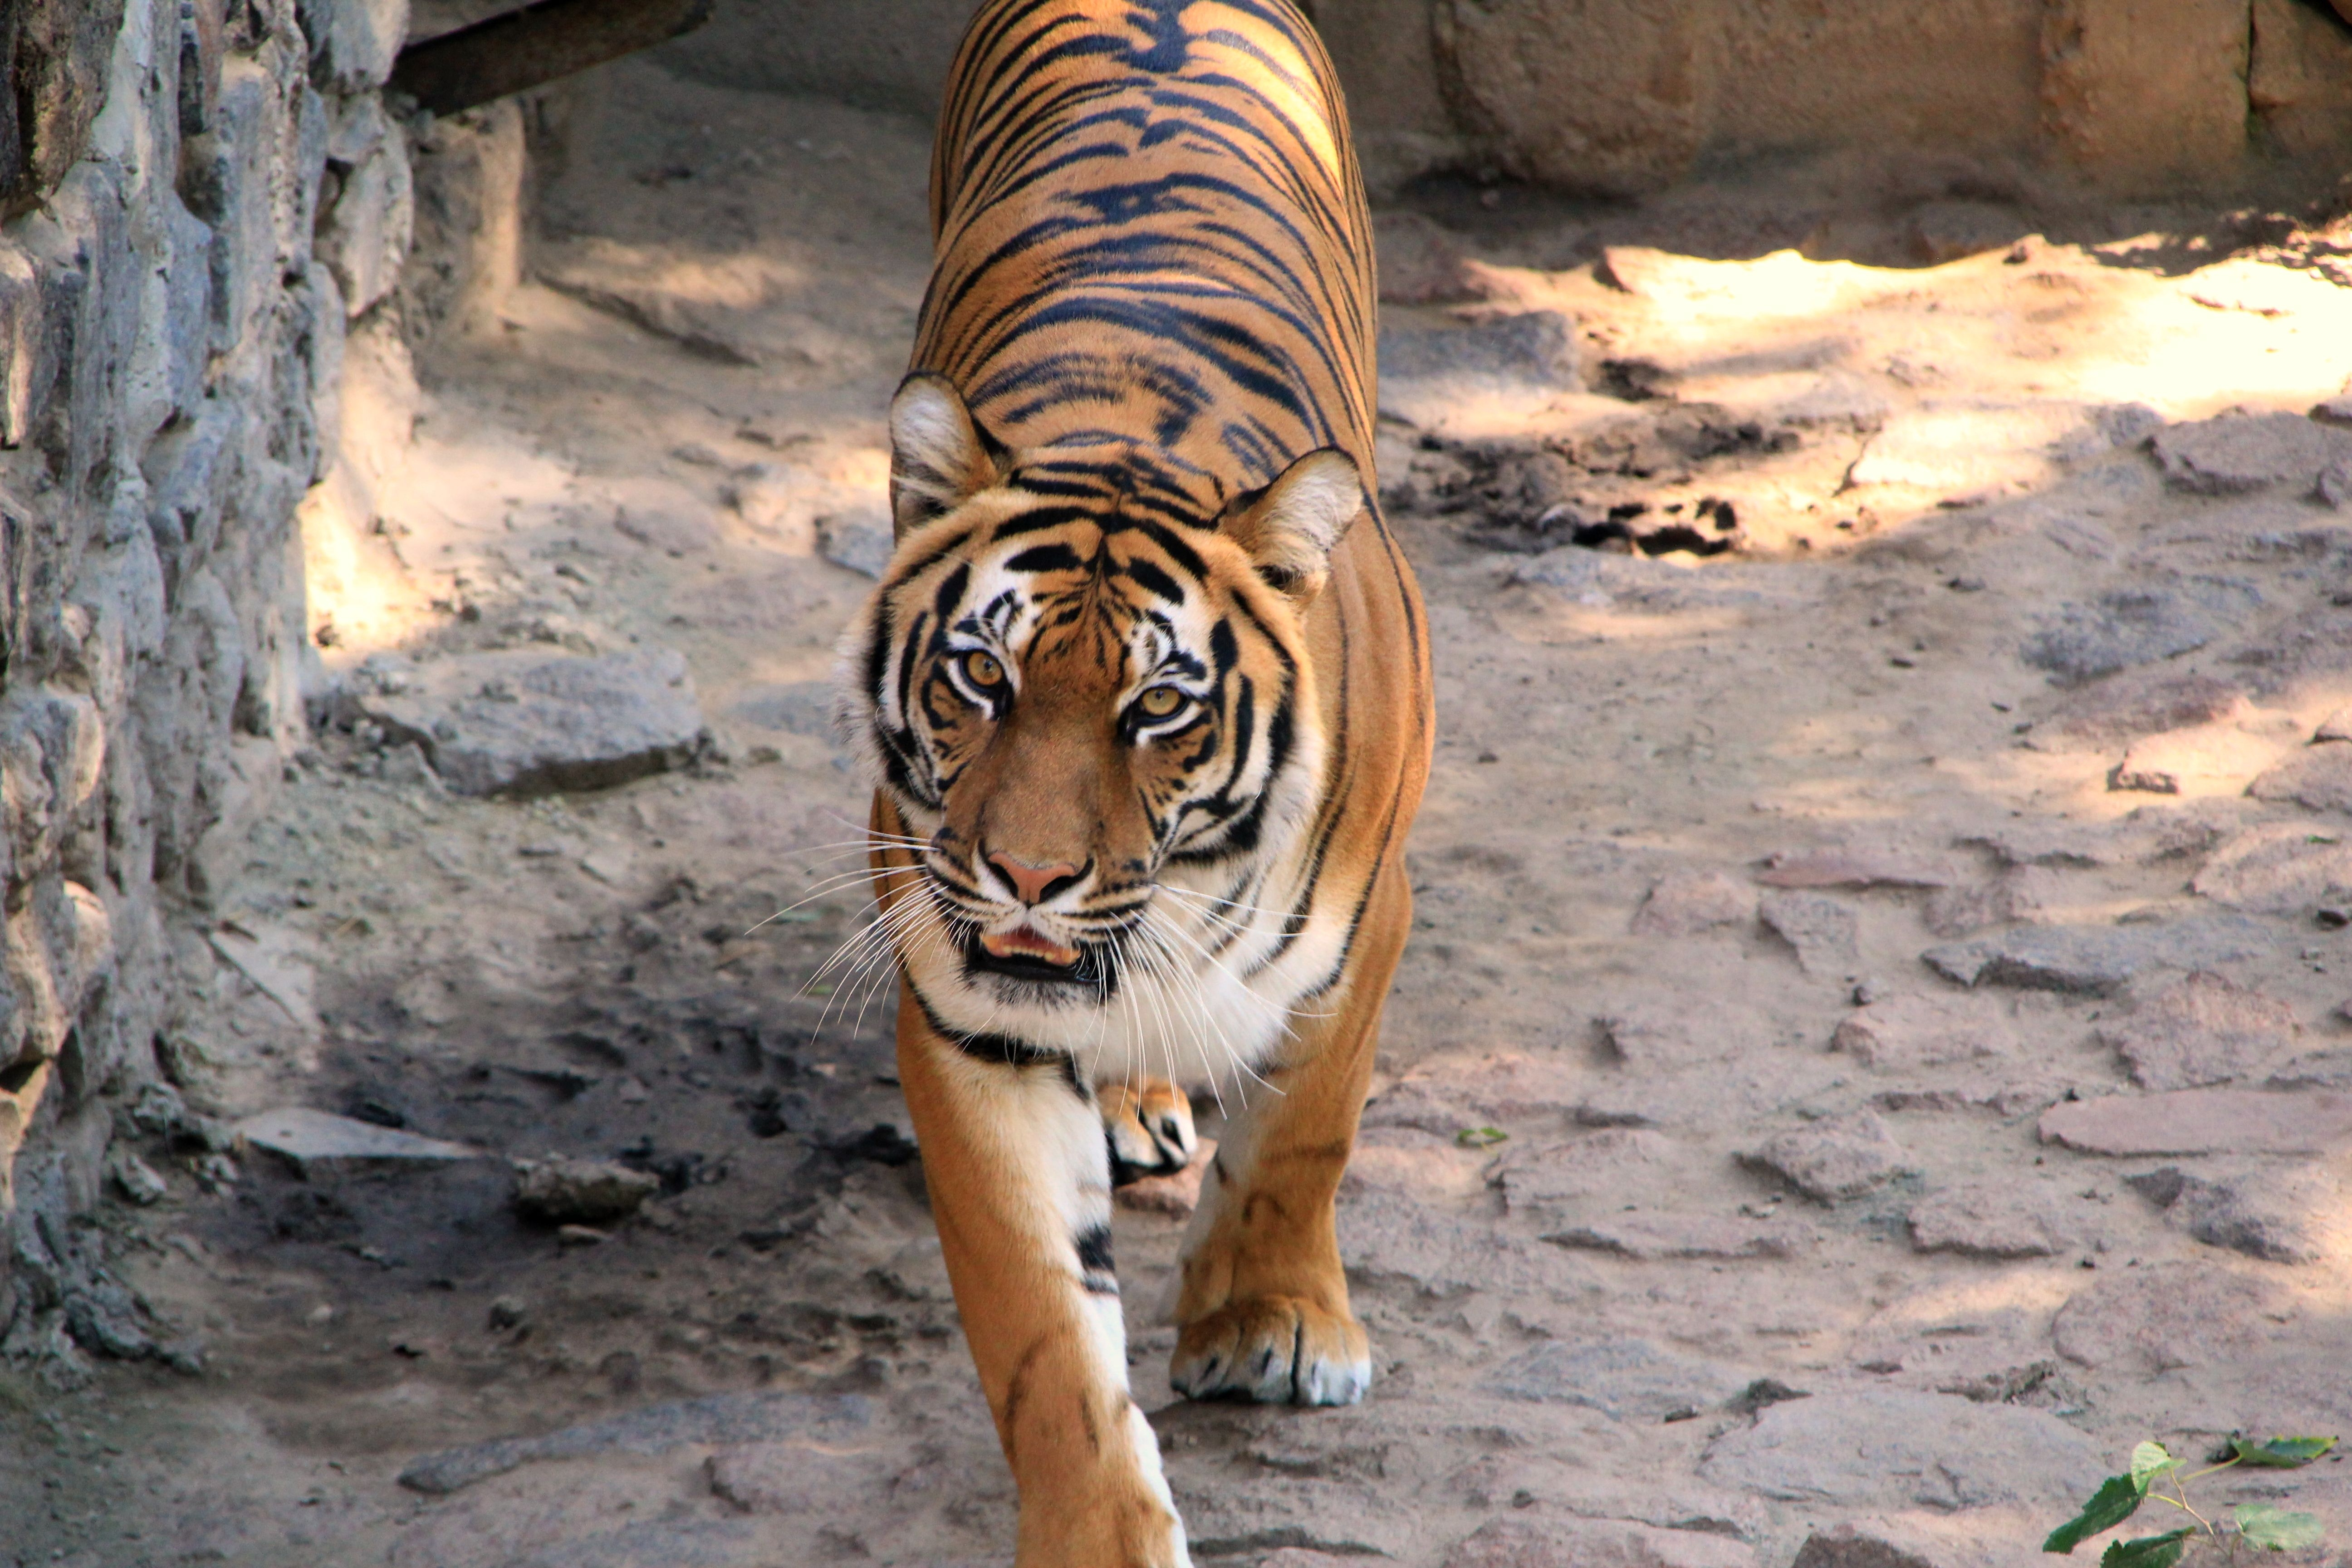 114679 download wallpaper Animals, Tiger, Striped, Predator screensavers and pictures for free